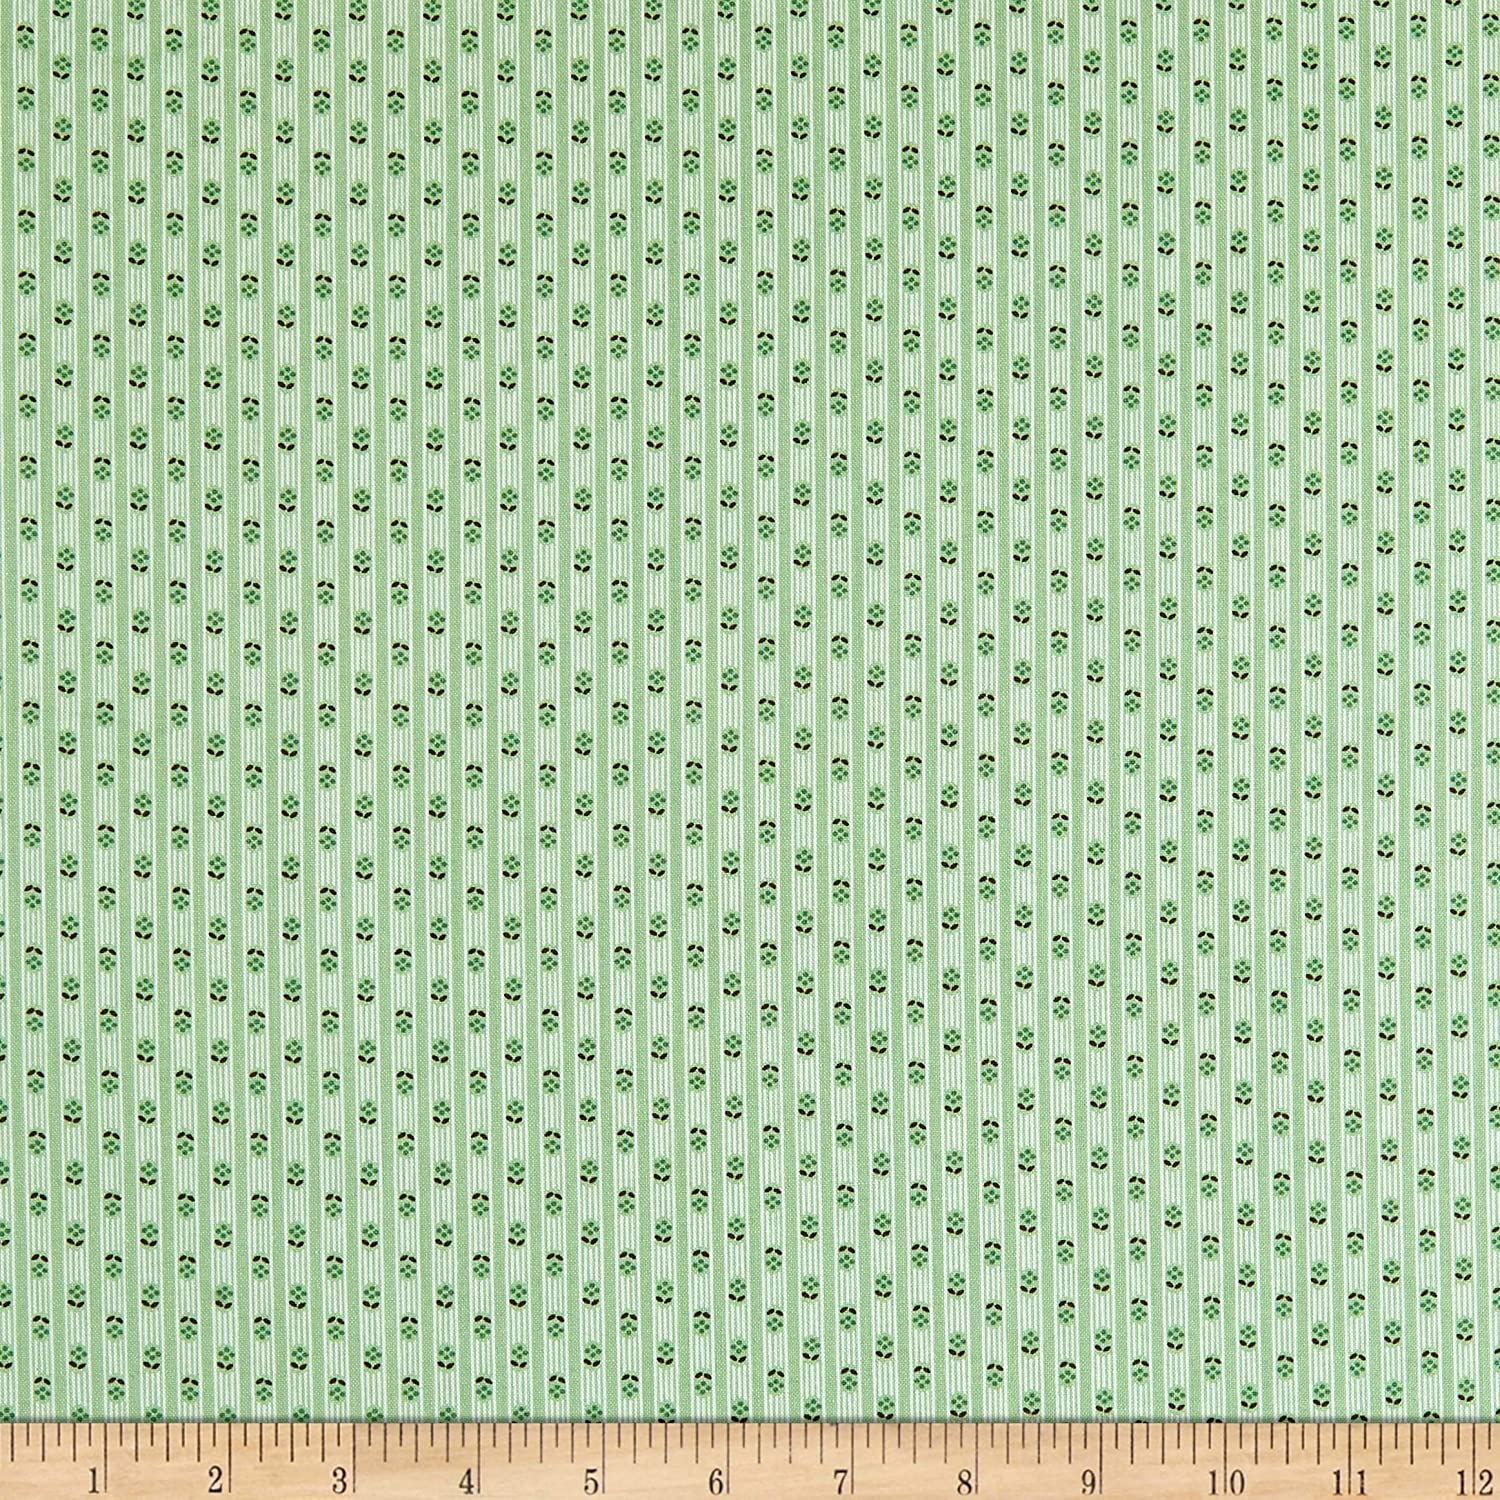 Riley Blake Designs Prim Stripe Granny Apple Green Quilt Fabric By The Yard